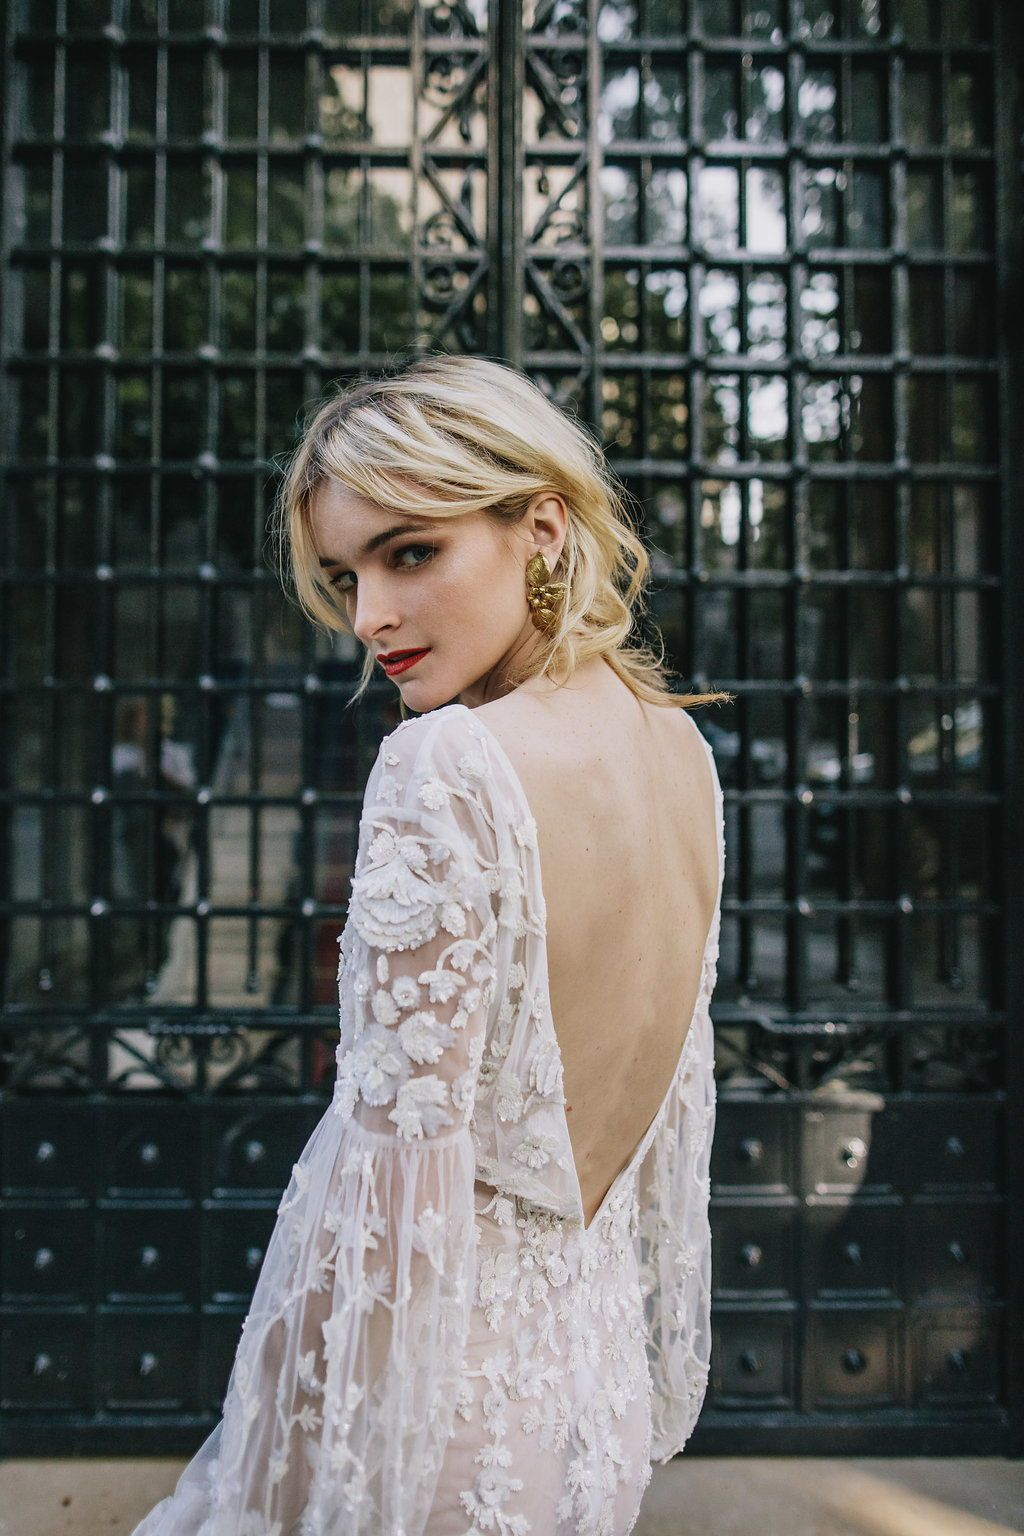 Lueto bridal backless boho wedding dress with sleeves will stop the